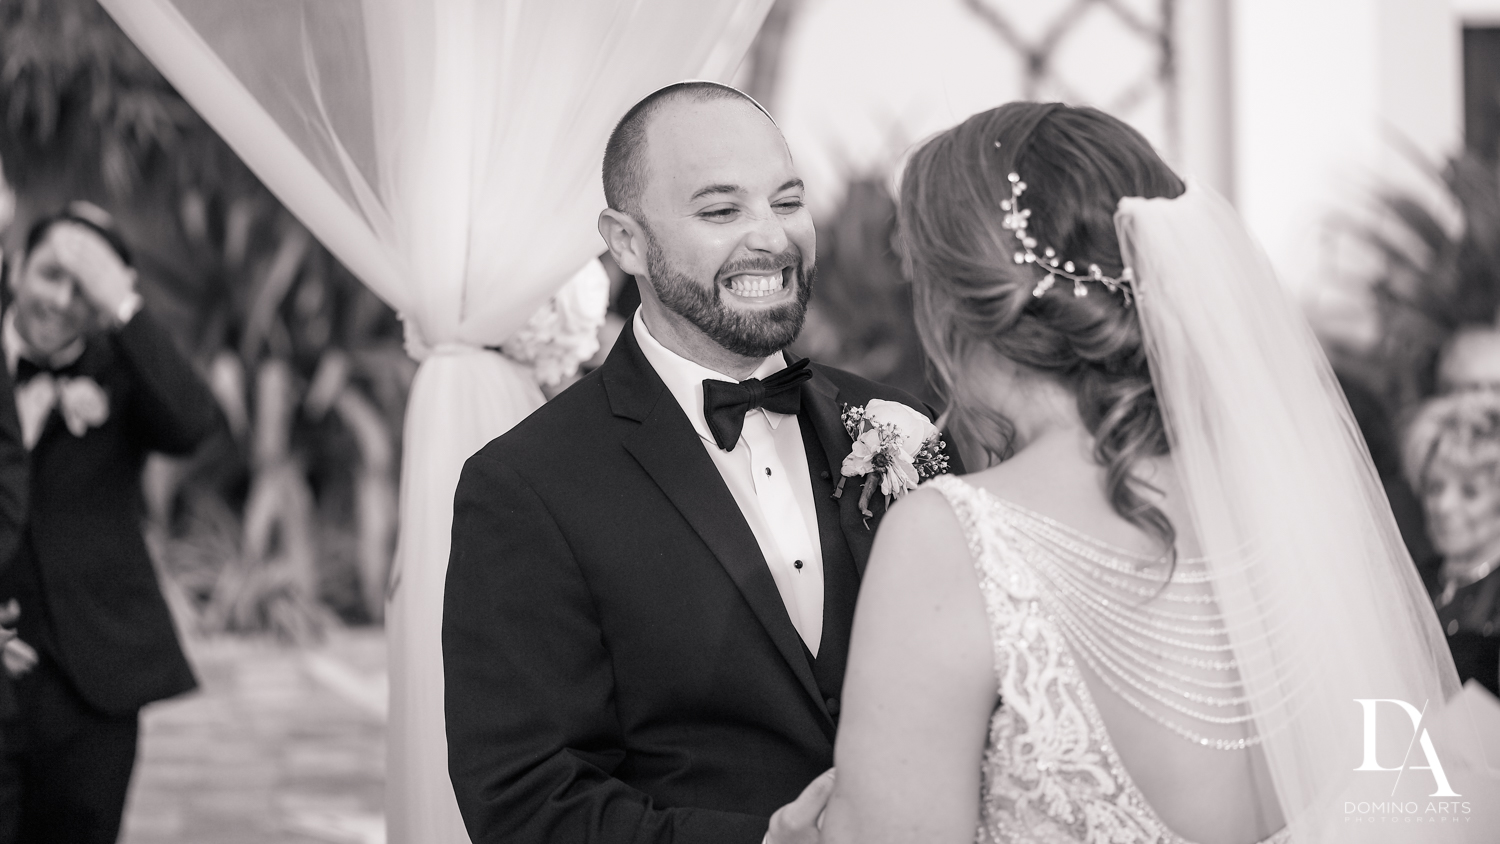 fun black and white pictures at Romantic Outdoors Wedding at Woodfield Country Club in Boca Raton, Florida by Domino Arts Photography